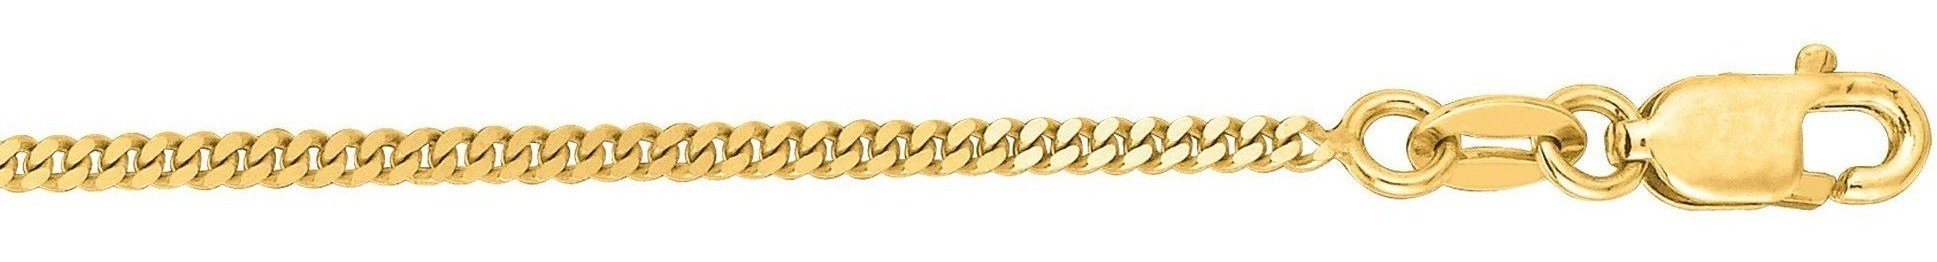 "16"" 14K Yellow Gold 1.5mm (0.06"") Polished Diamond Cut Gourmette Chain w/ Lobster Clasp"